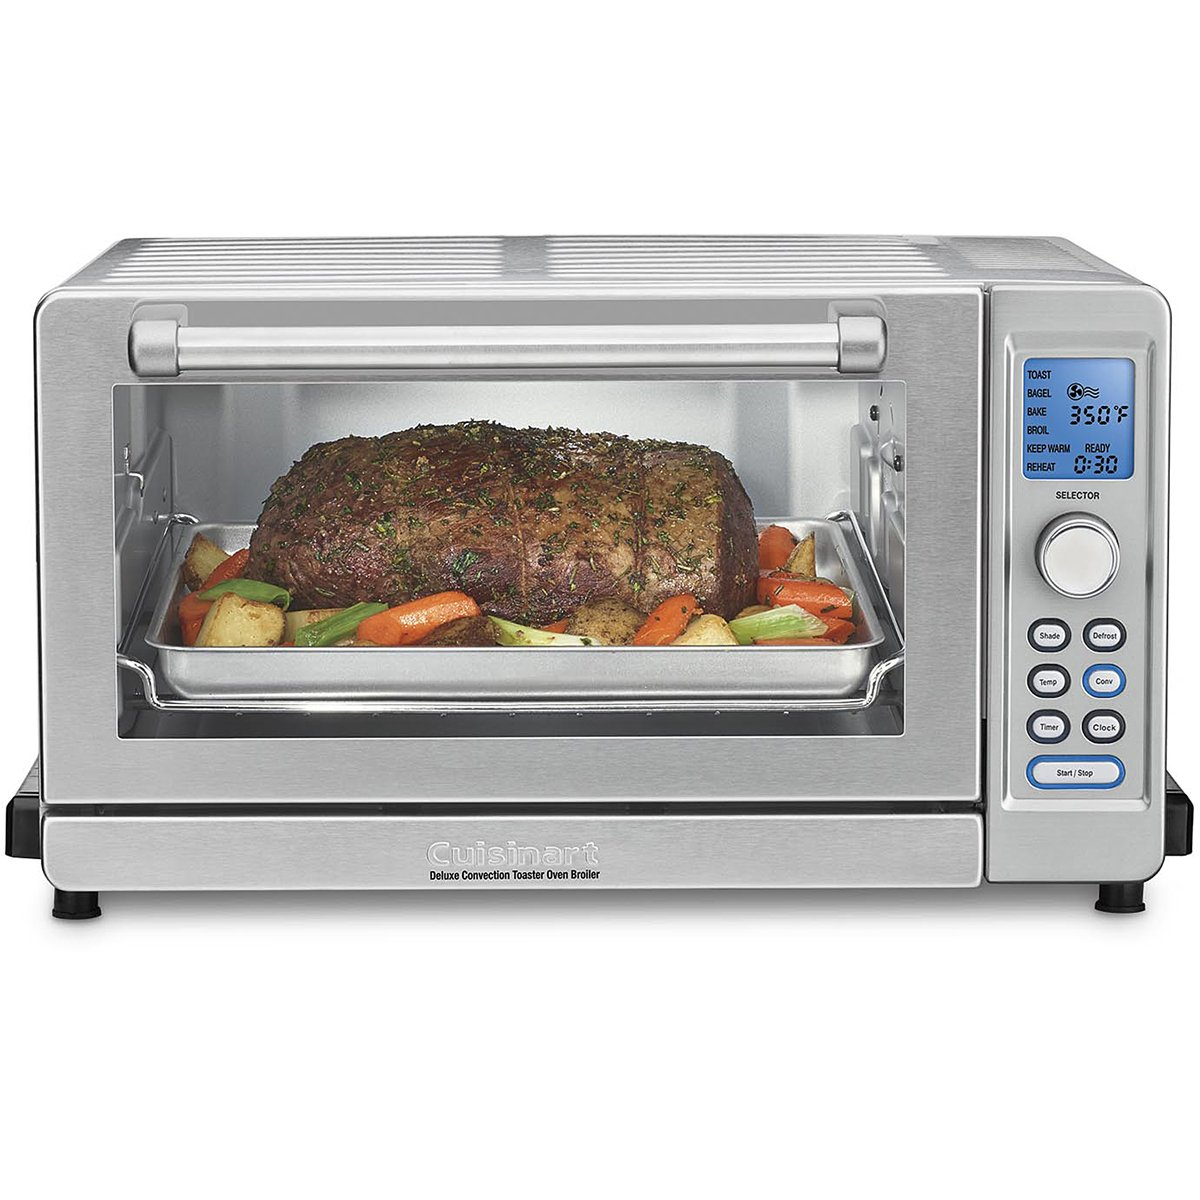 Cuisinart TOB-135 Deluxe Convection Toaster Oven Broiler, Brushed Stainless, 9.3